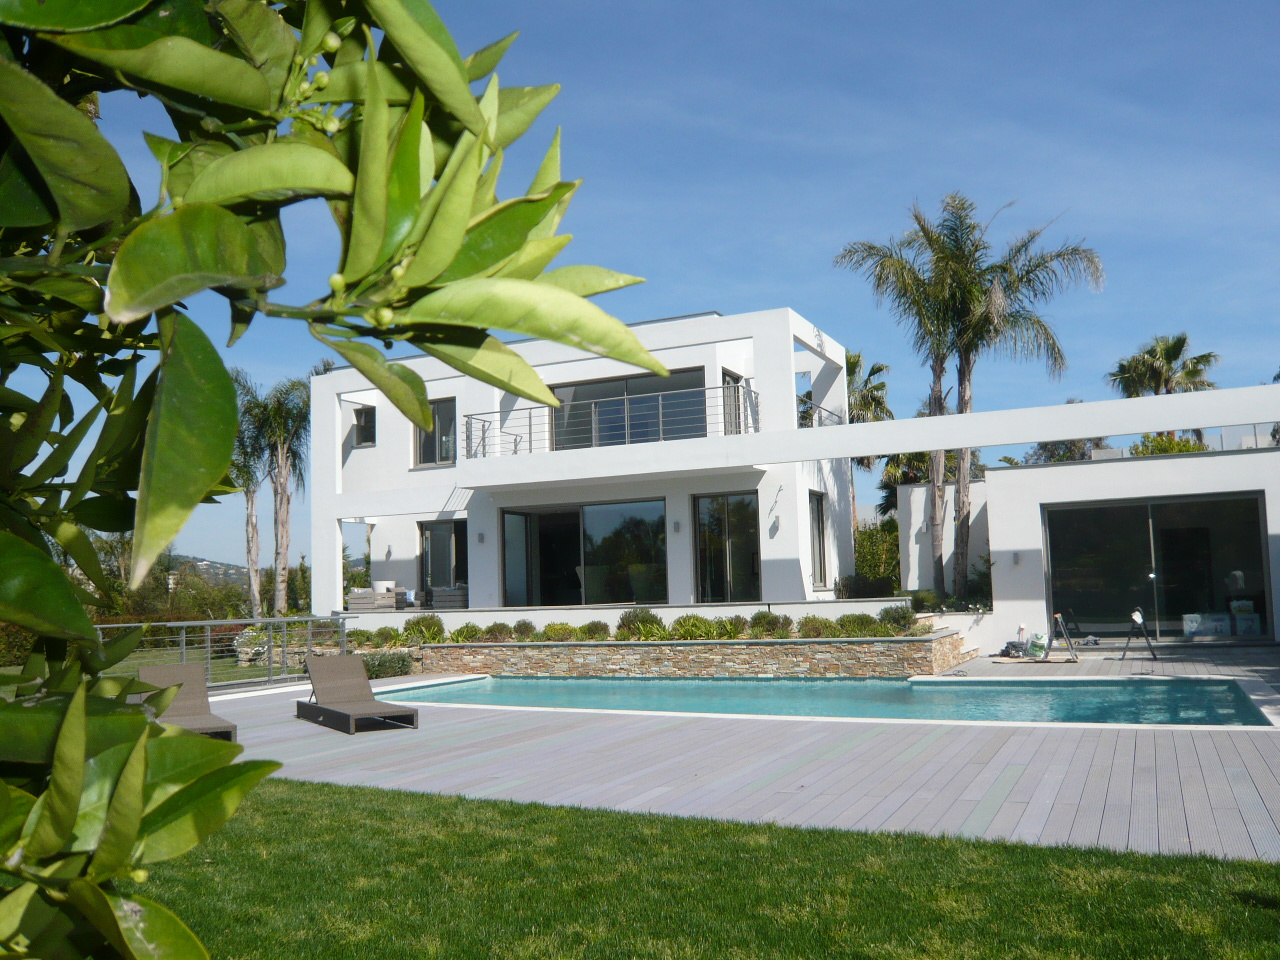 Vente cannes superbe villa californienne neuve for Maison style californienne